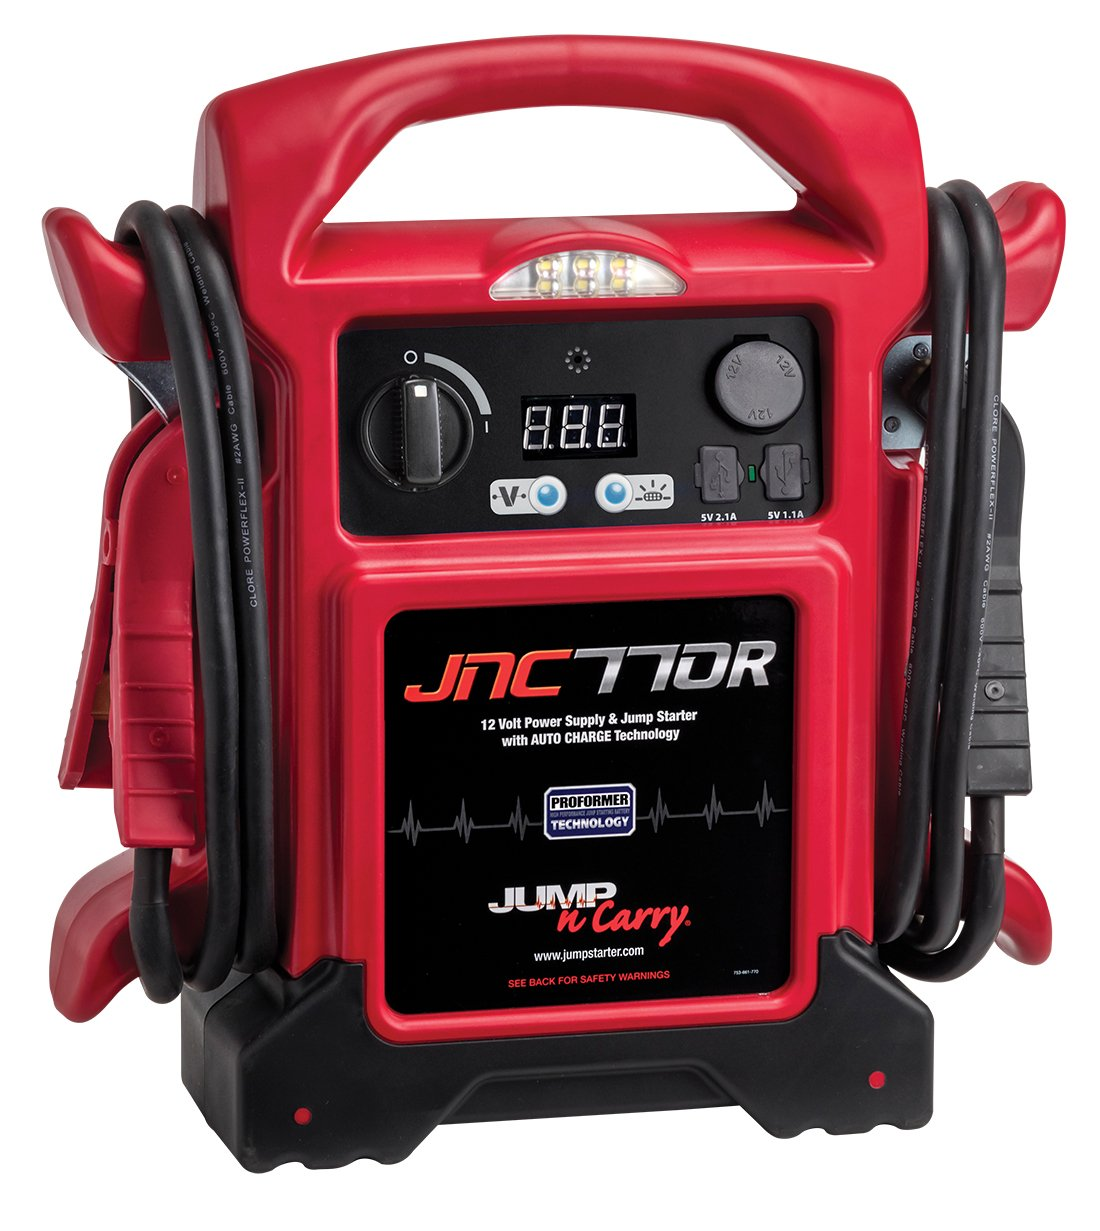 Clore Automotive Jump-N-Carry JNC770R 1,700 Peak Amp